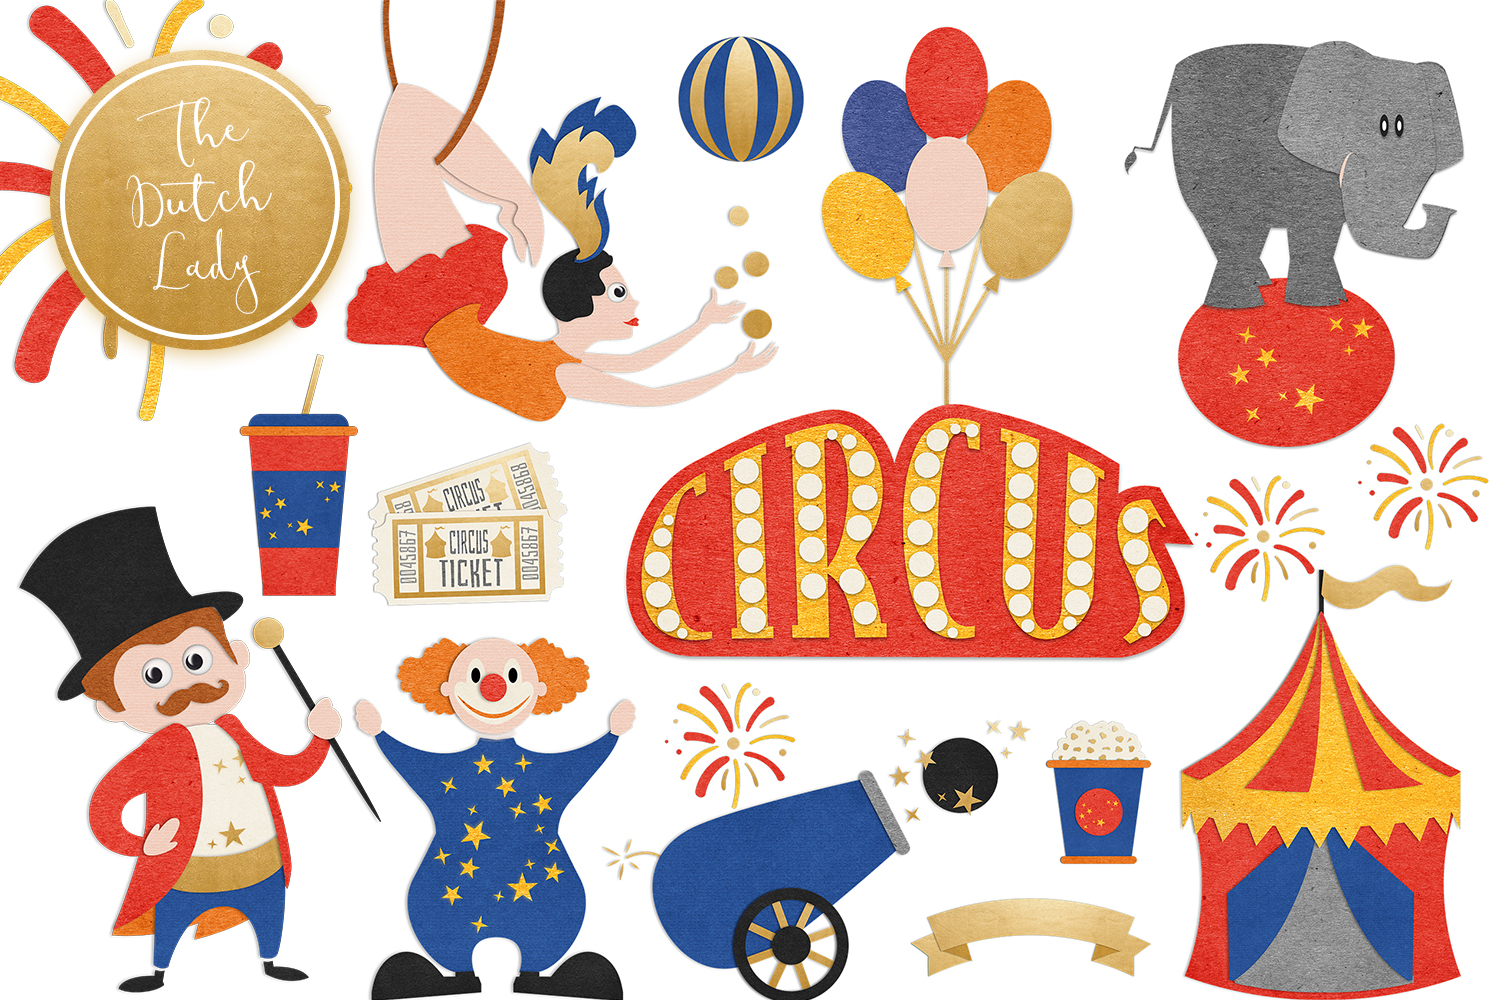 image library stock Carnival show set vsual. Circus clipart